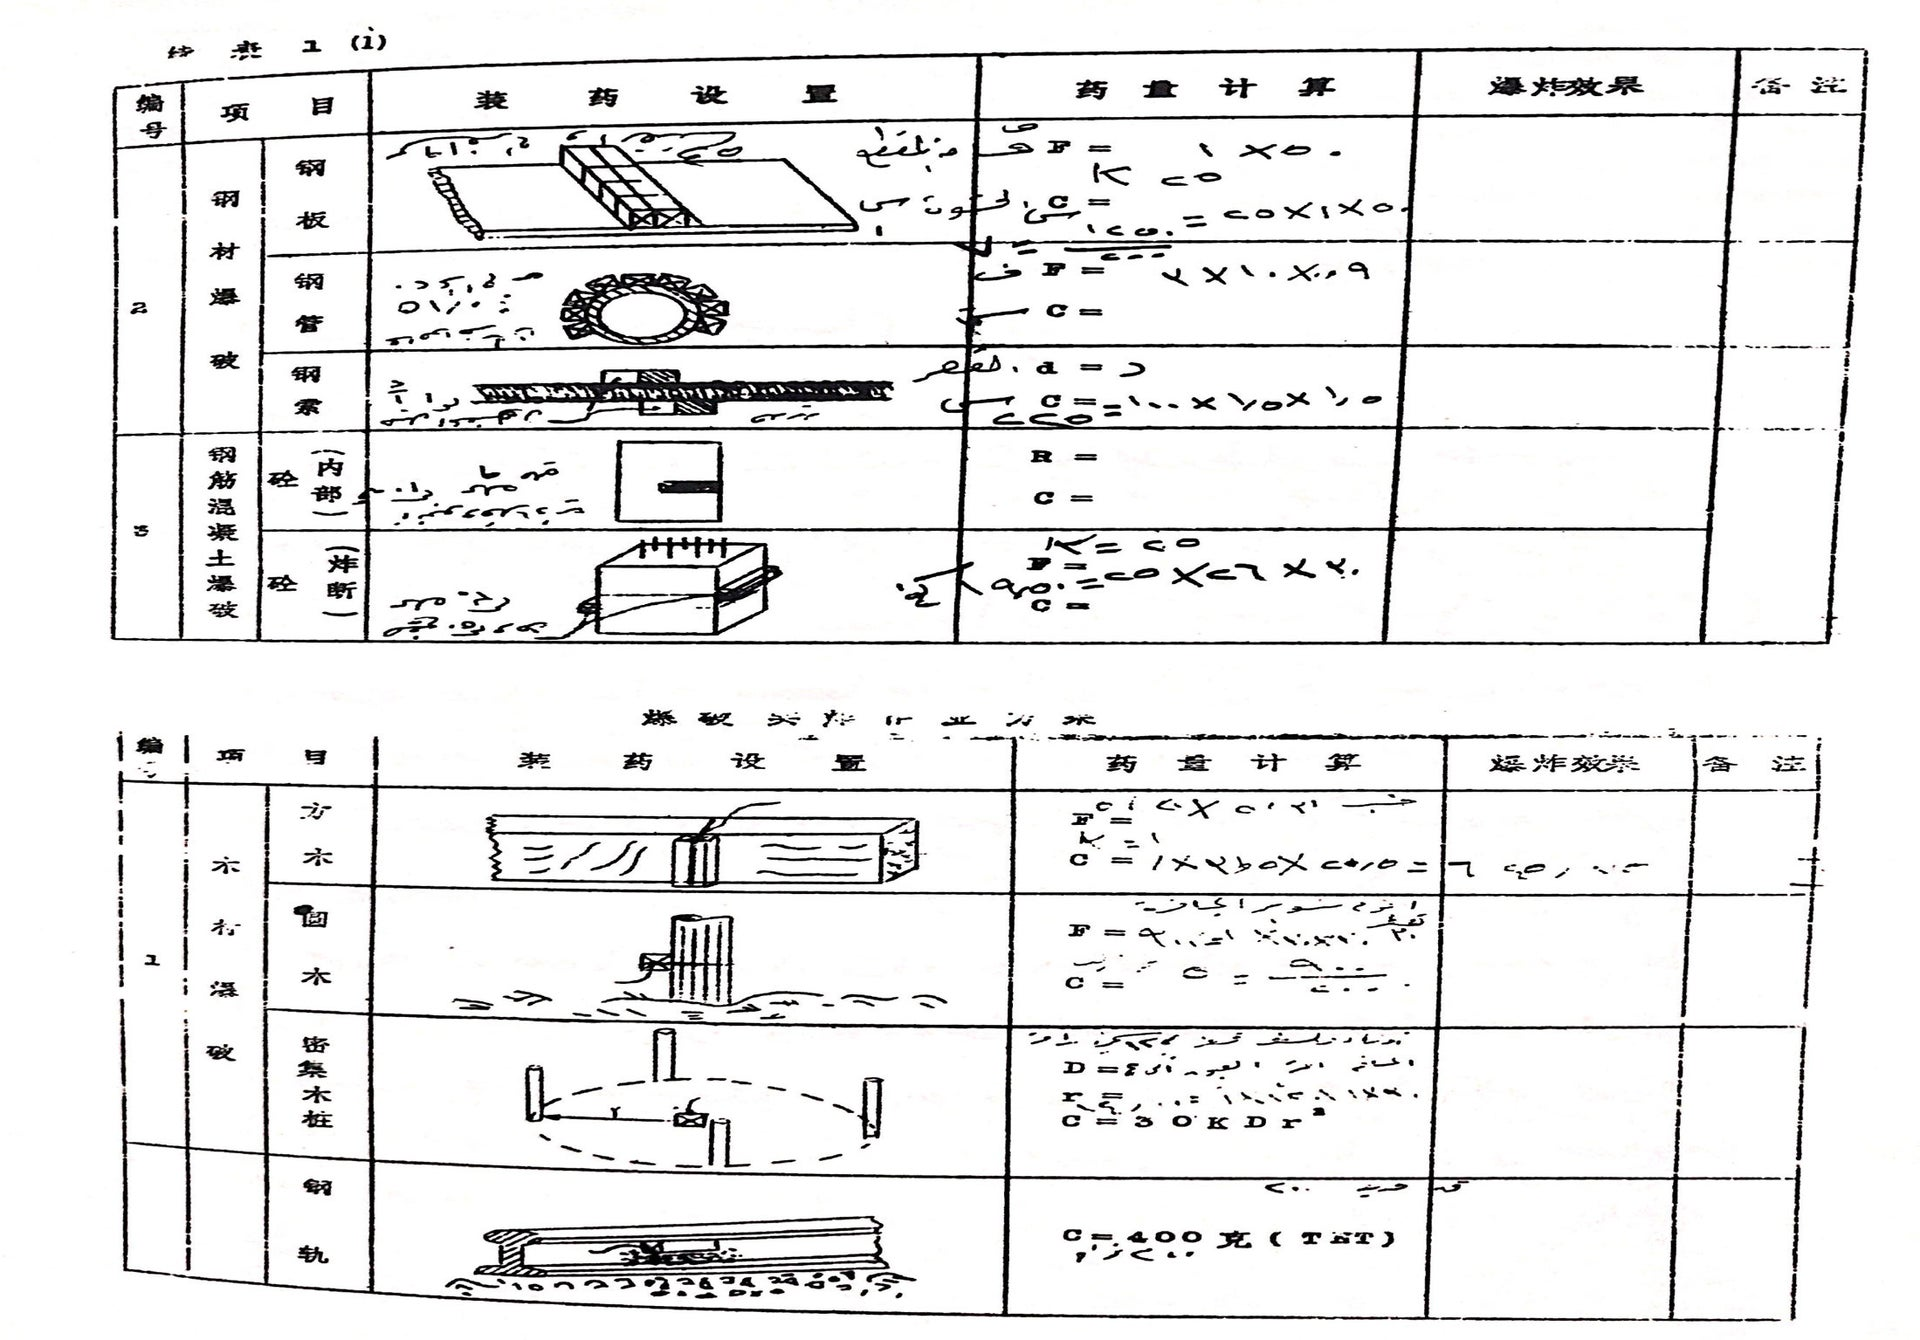 Instructions for assembling explosives using barbed wire, cement, gunpowder and other materials.